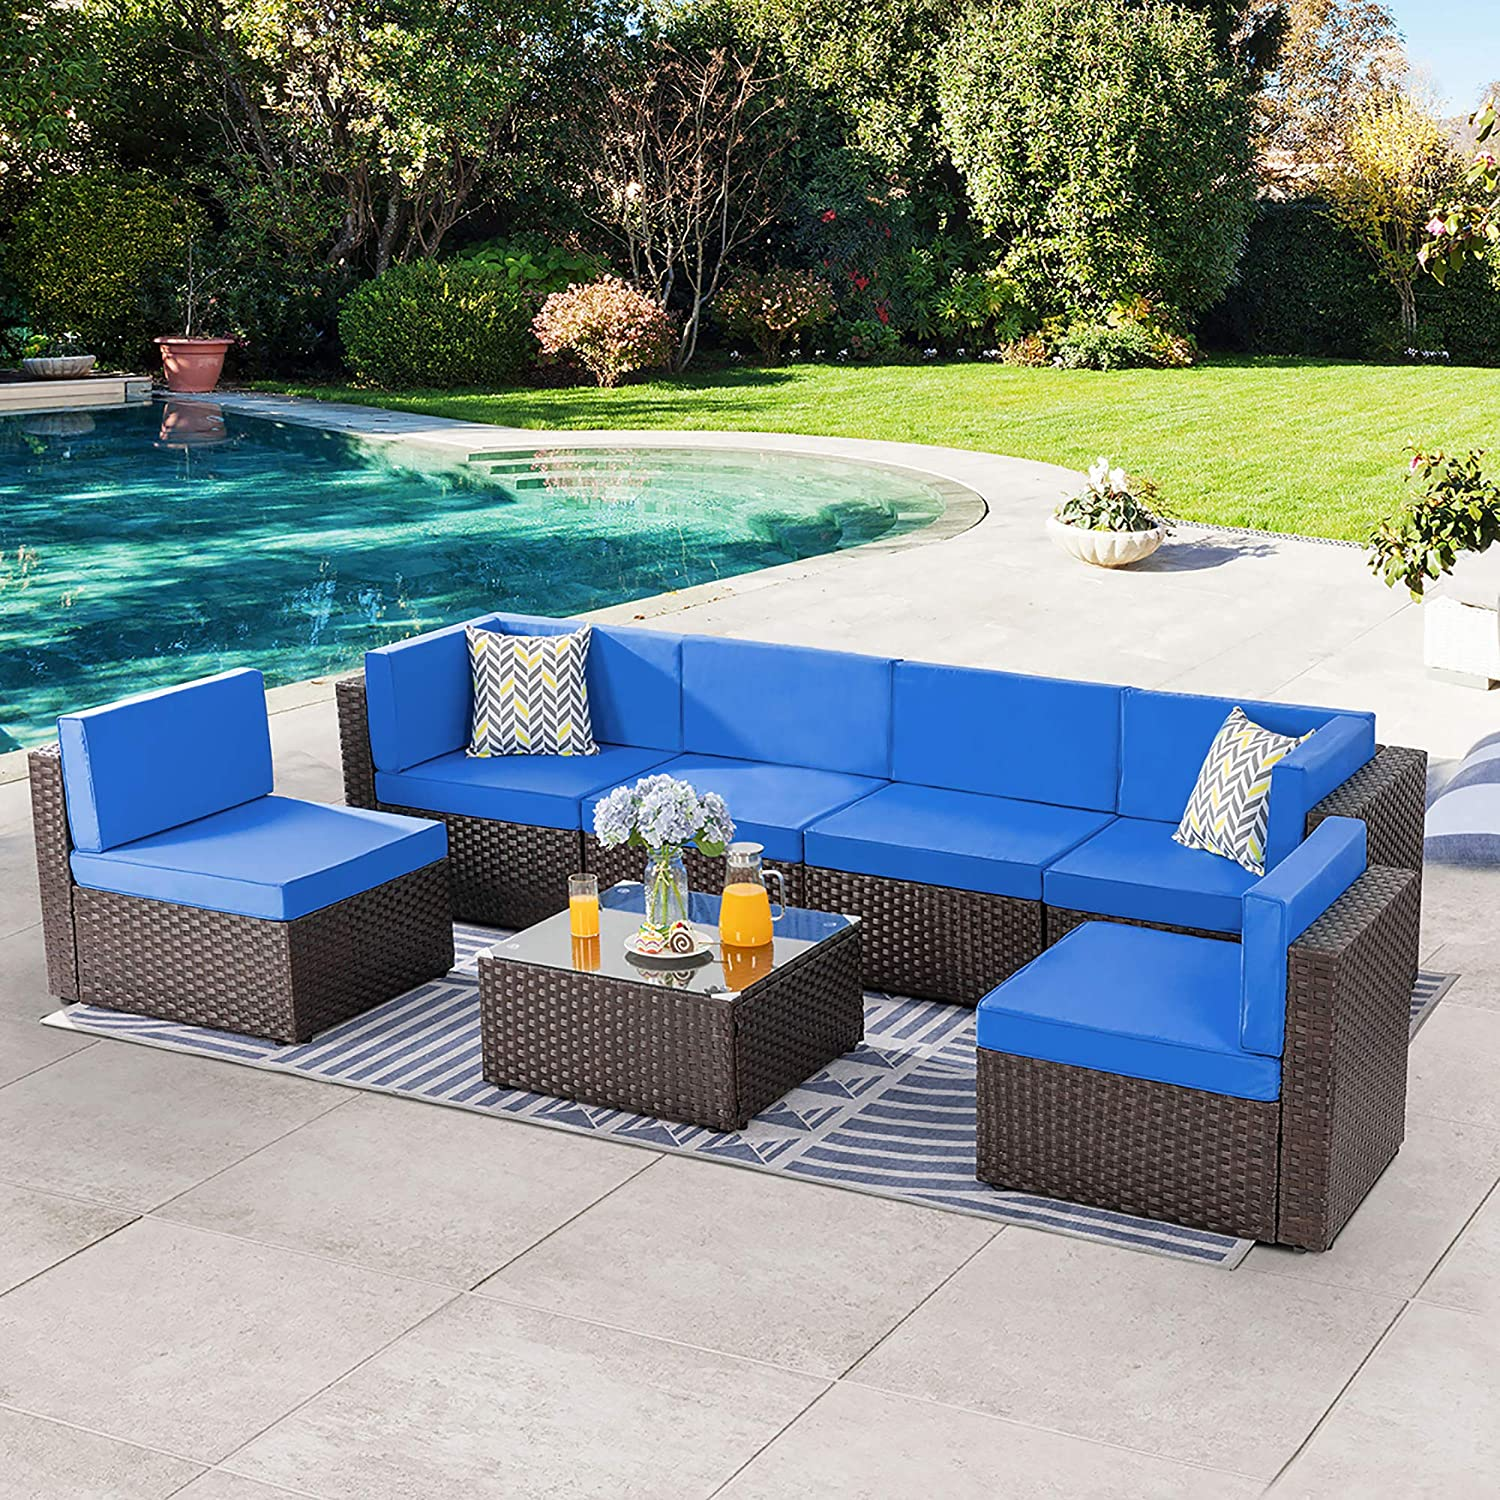 SUNLEI 7pcs Patio Outdoor Furniture Sets Conversation Set,Low Back All-Weather Rattan Sectional Sofa with Tea Table&Washable Couch Cushions&Ottoman(Brown Rattan)(Royal Blue)